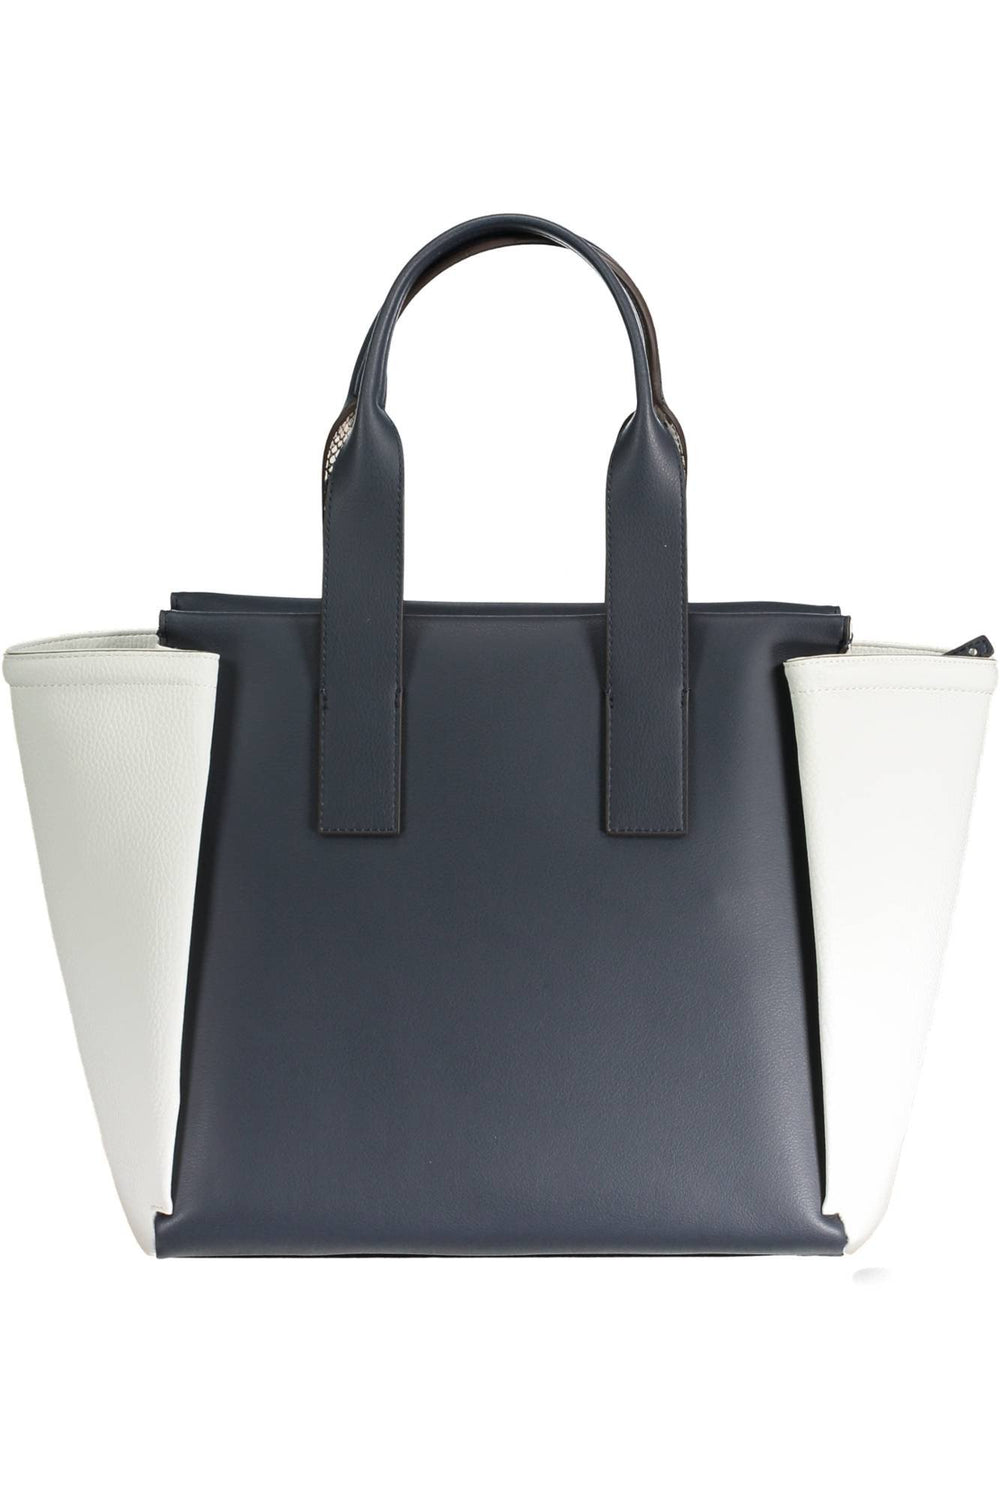 73481-Calvin Klein Women Handbag-Home > Bags > Handbags-calvin klein-blue-UNIQUE-Faeshon.com